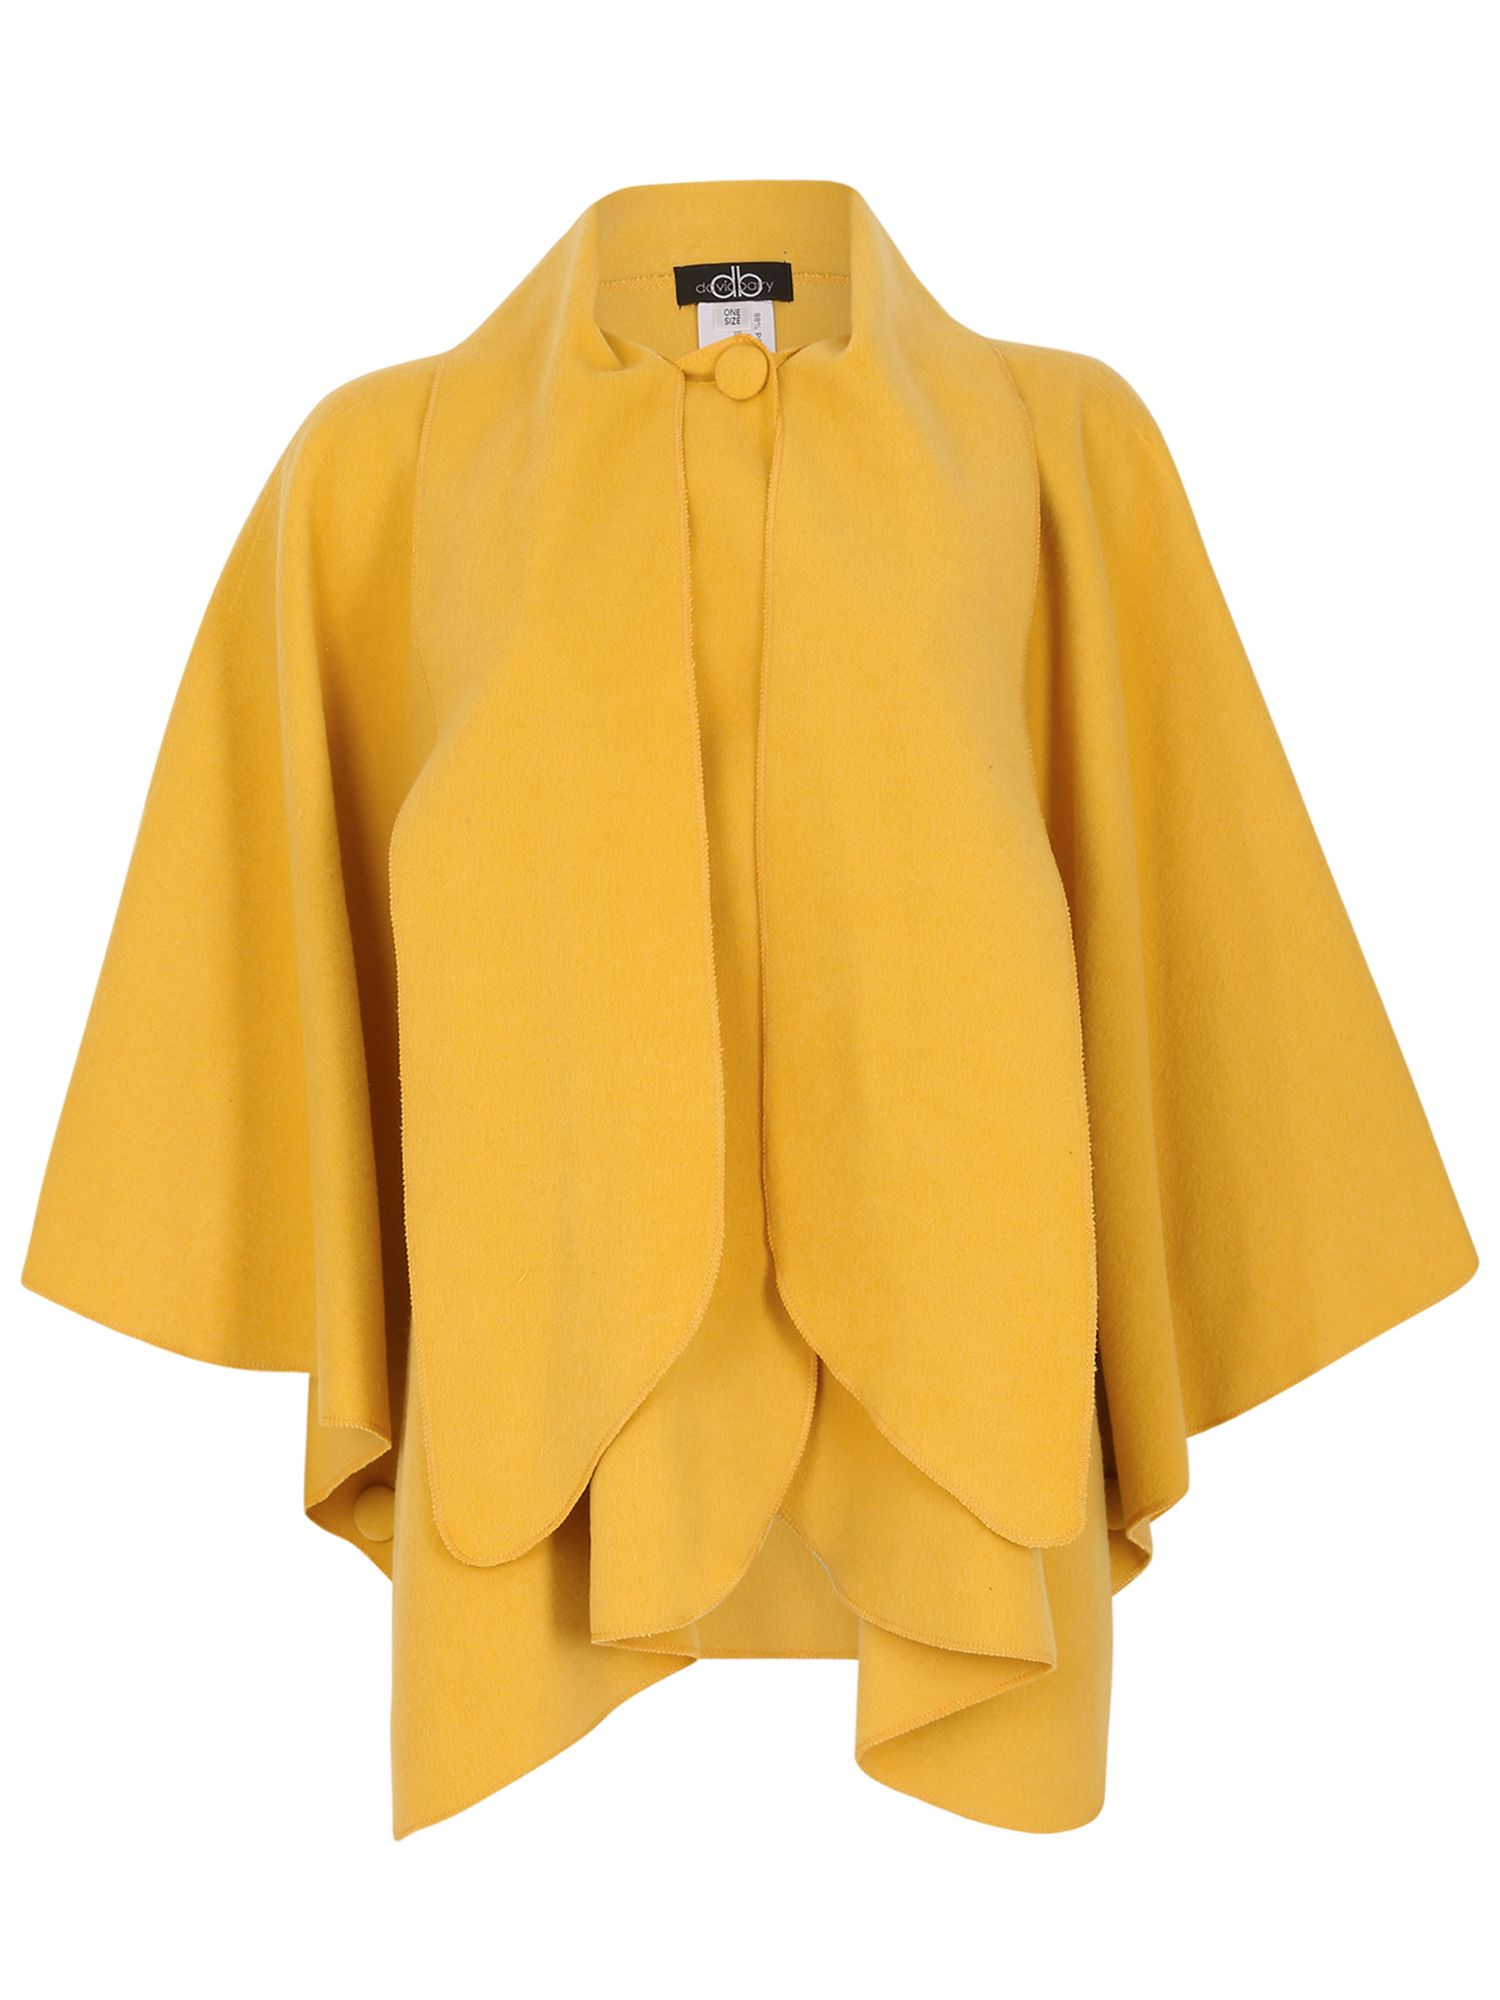 David Barry Faux Cashmere Cape, Yellow